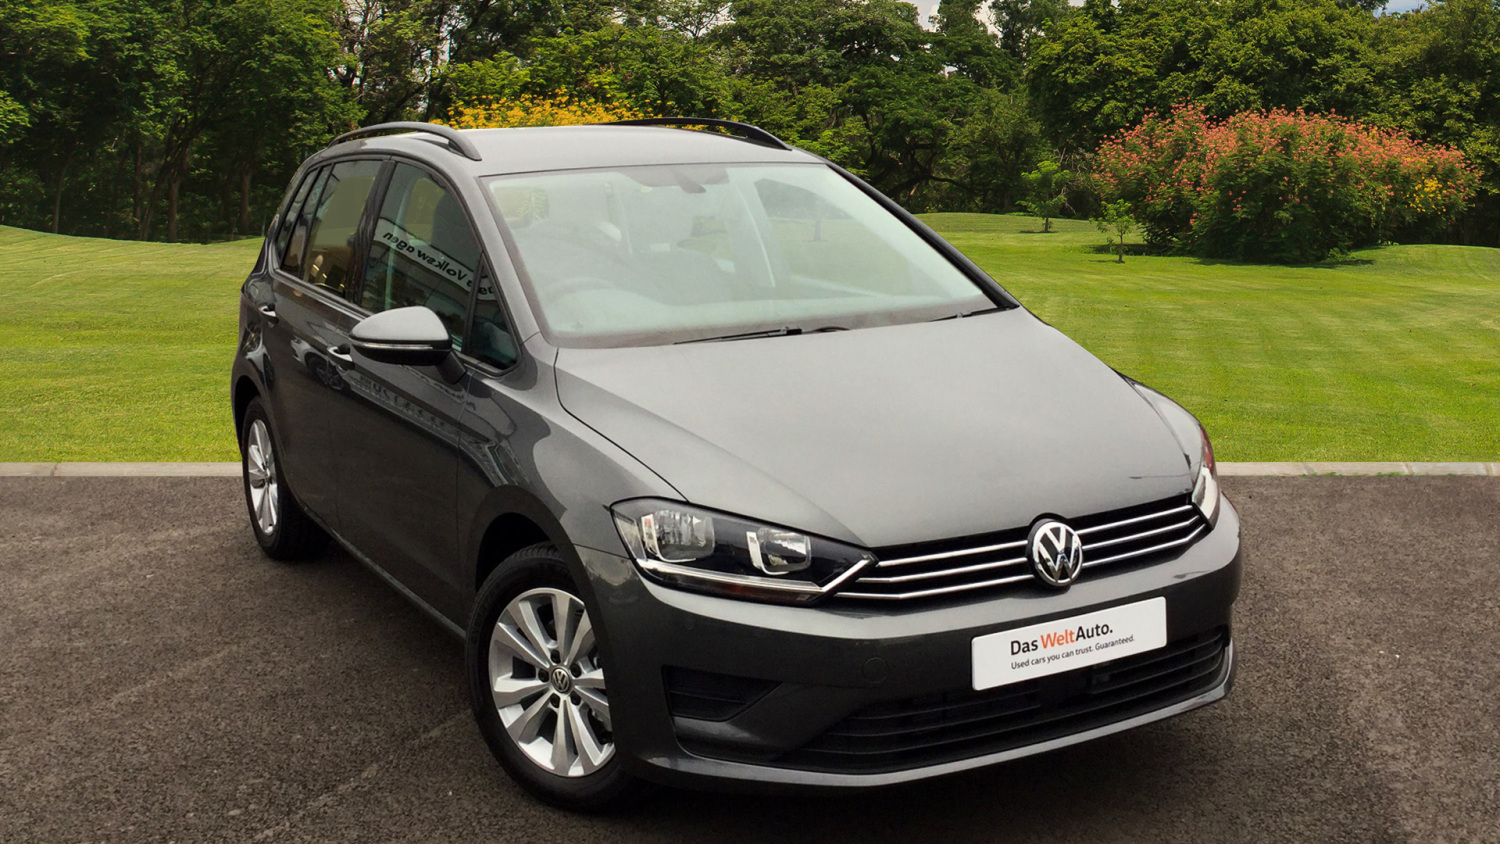 used volkswagen golf sv 1 6 tdi 115 se 5dr diesel hatchback for sale bristol street motors. Black Bedroom Furniture Sets. Home Design Ideas